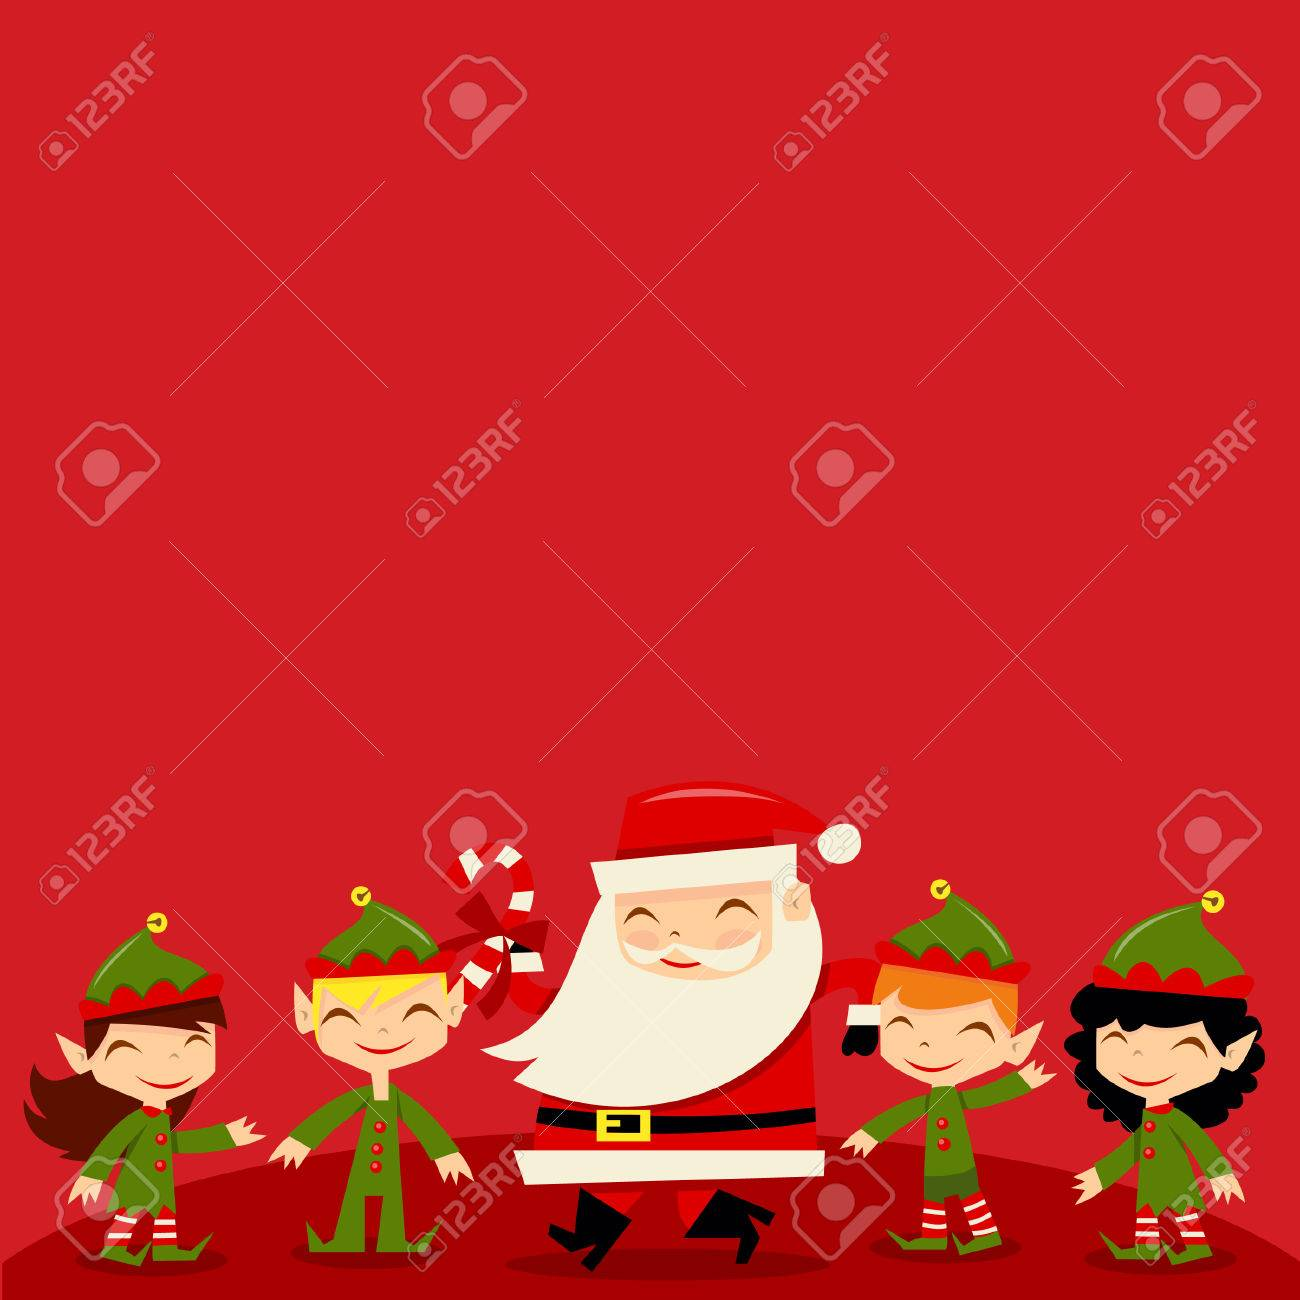 A illustration of retro inspired christmas santa and his cute a illustration of retro inspired christmas santa and his cute elves with a red background copy buycottarizona Image collections